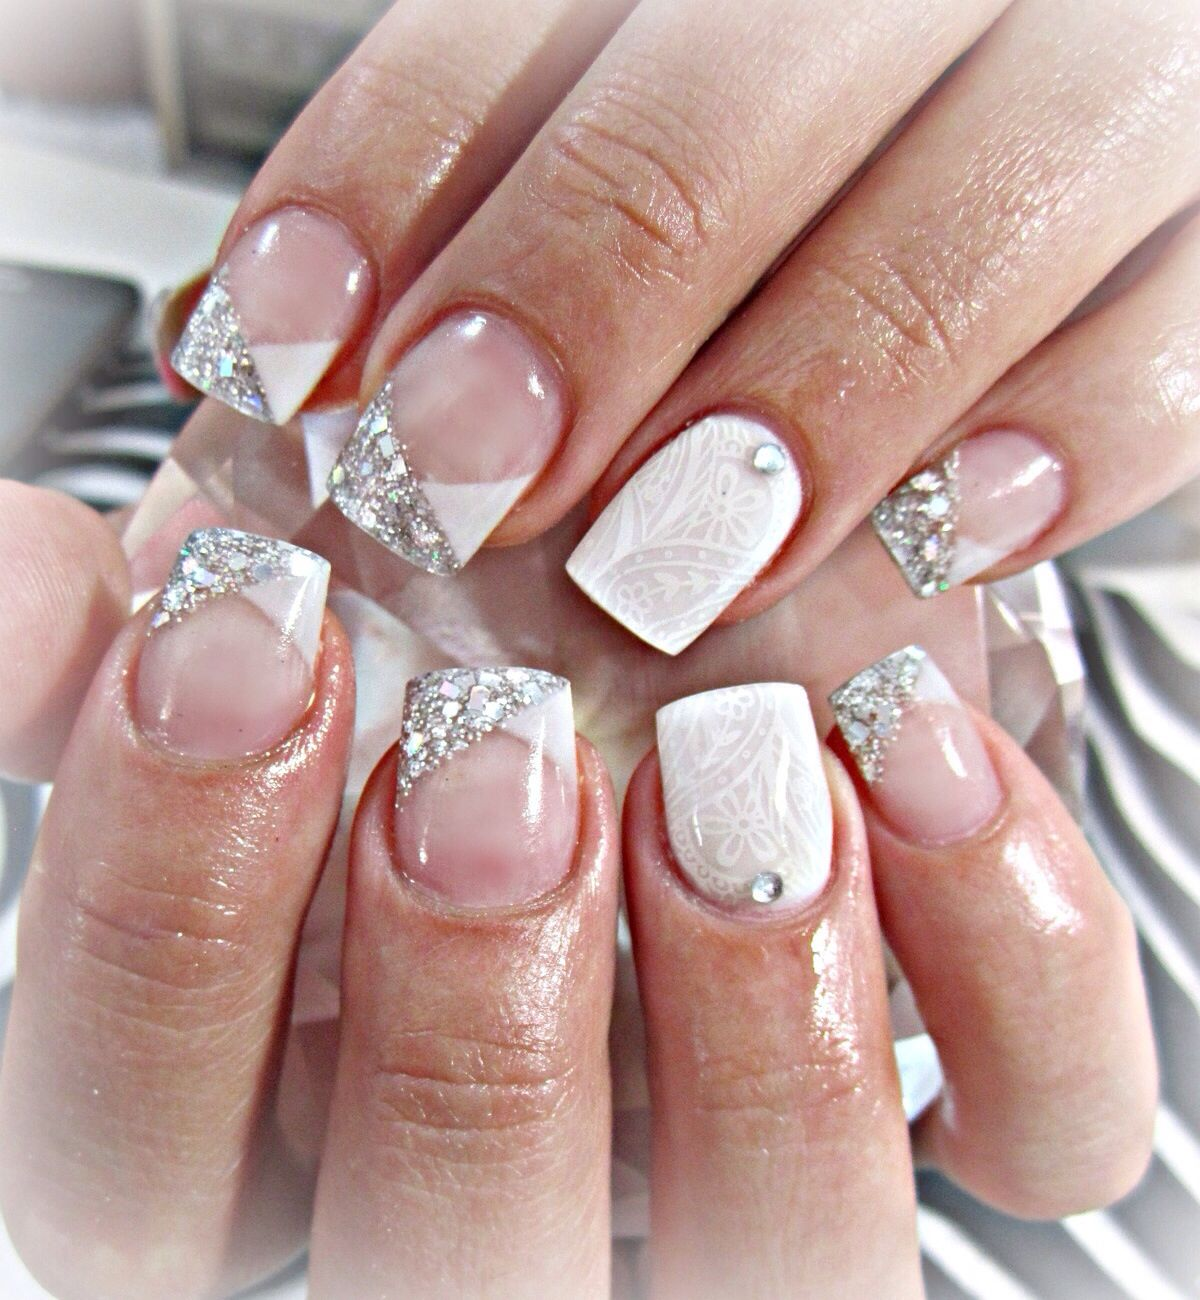 Silver and white acrylic nails | Nail design | Pinterest